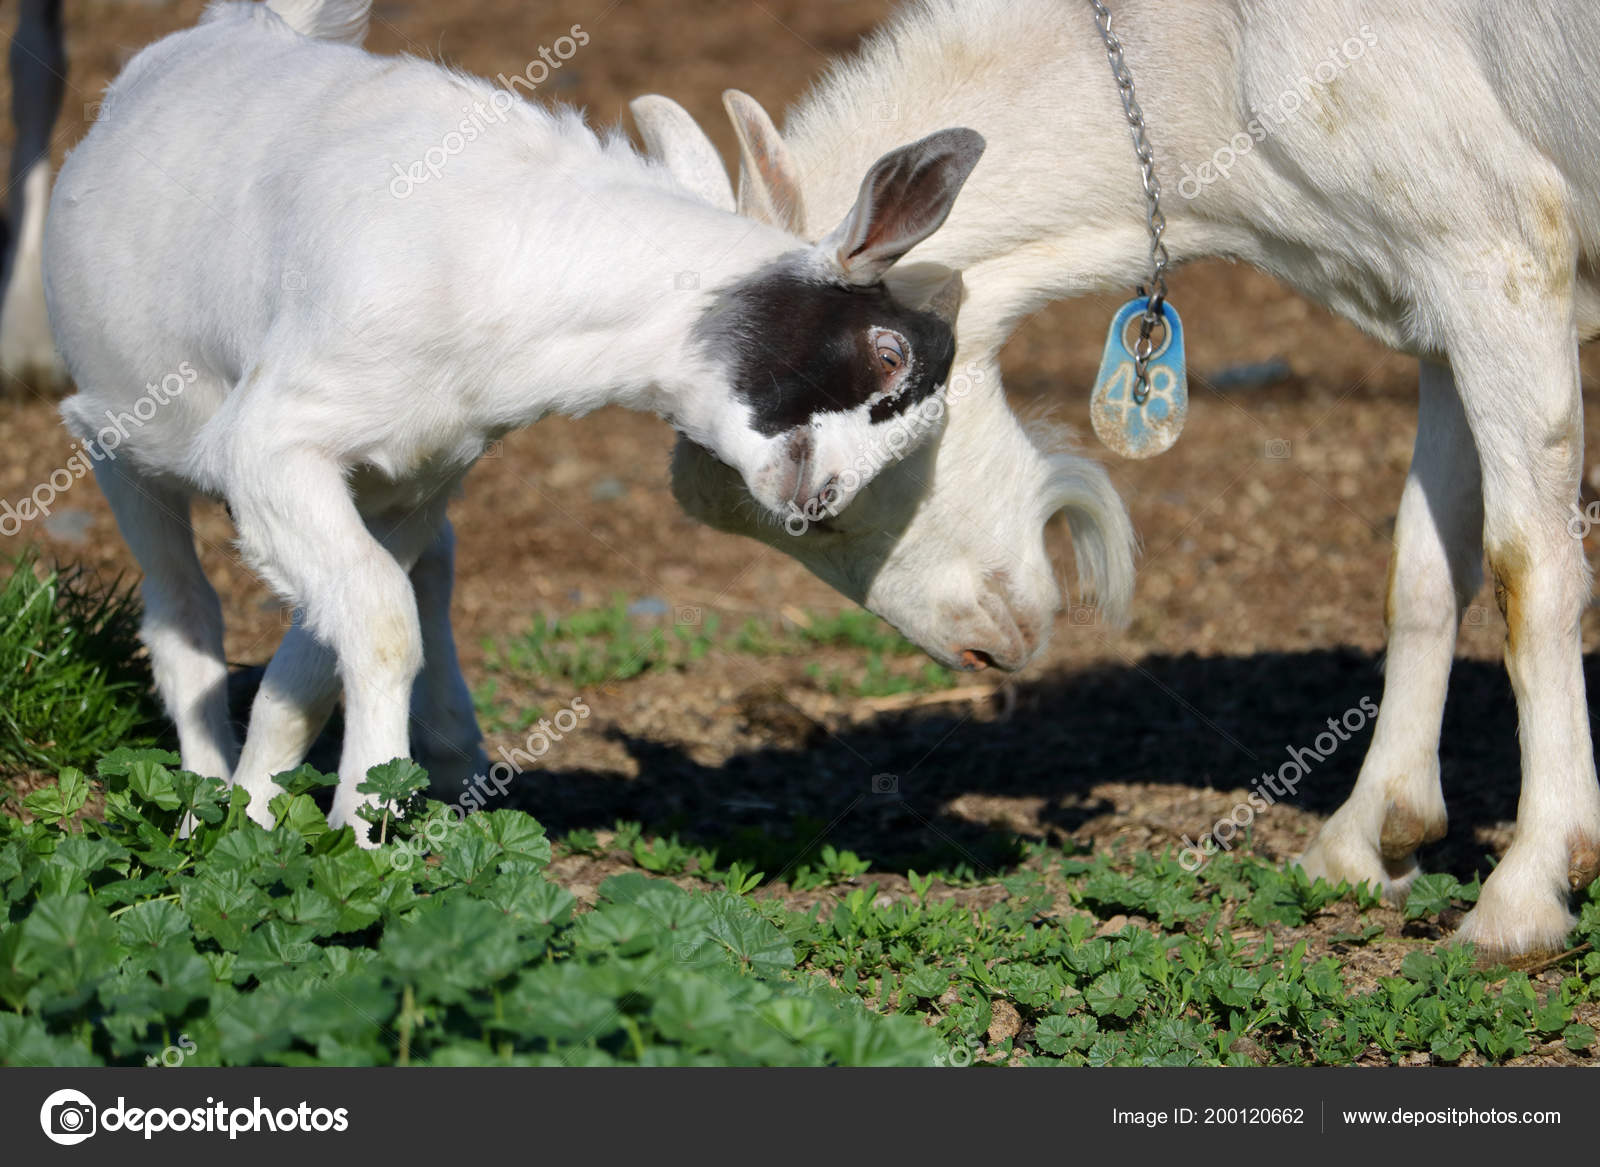 Close On A Nigerian Dwarf Goat And Another Standing In The Pasture Butting Heads During Round Of Playful Activity Photo By Modfos